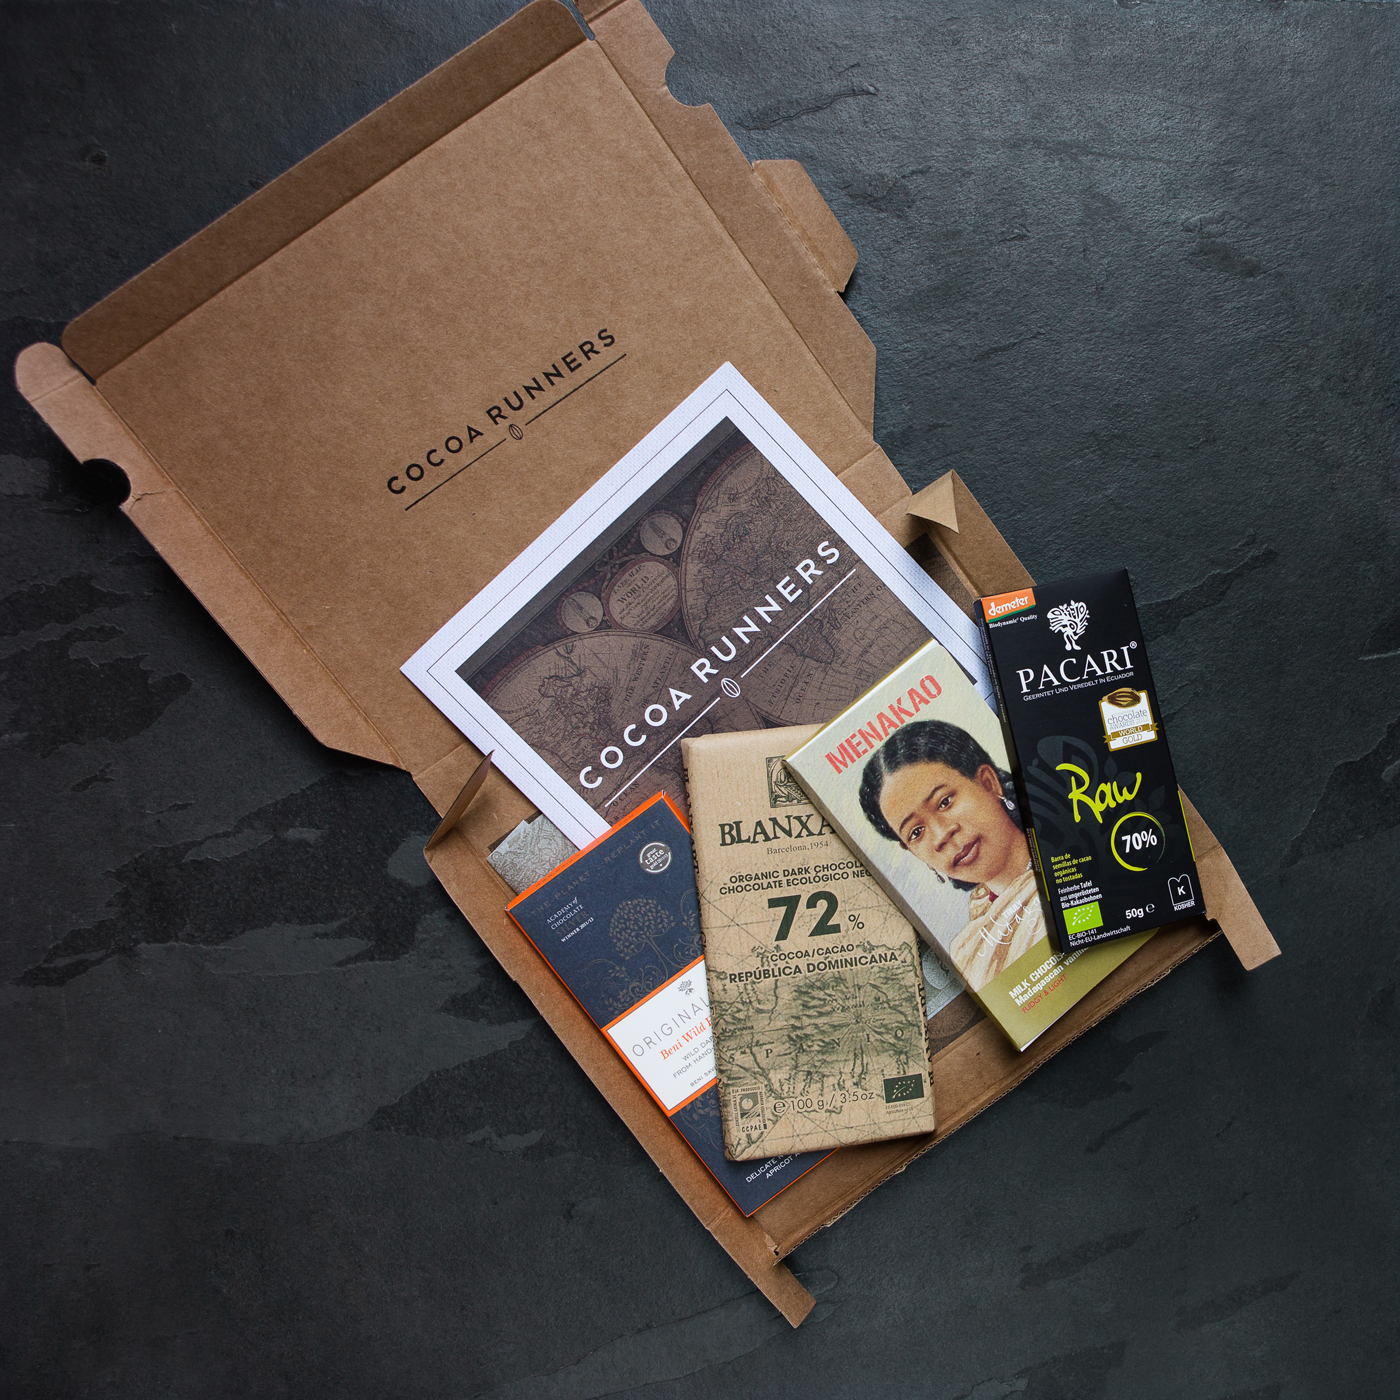 Cocoa Runners chocolate food subscription box